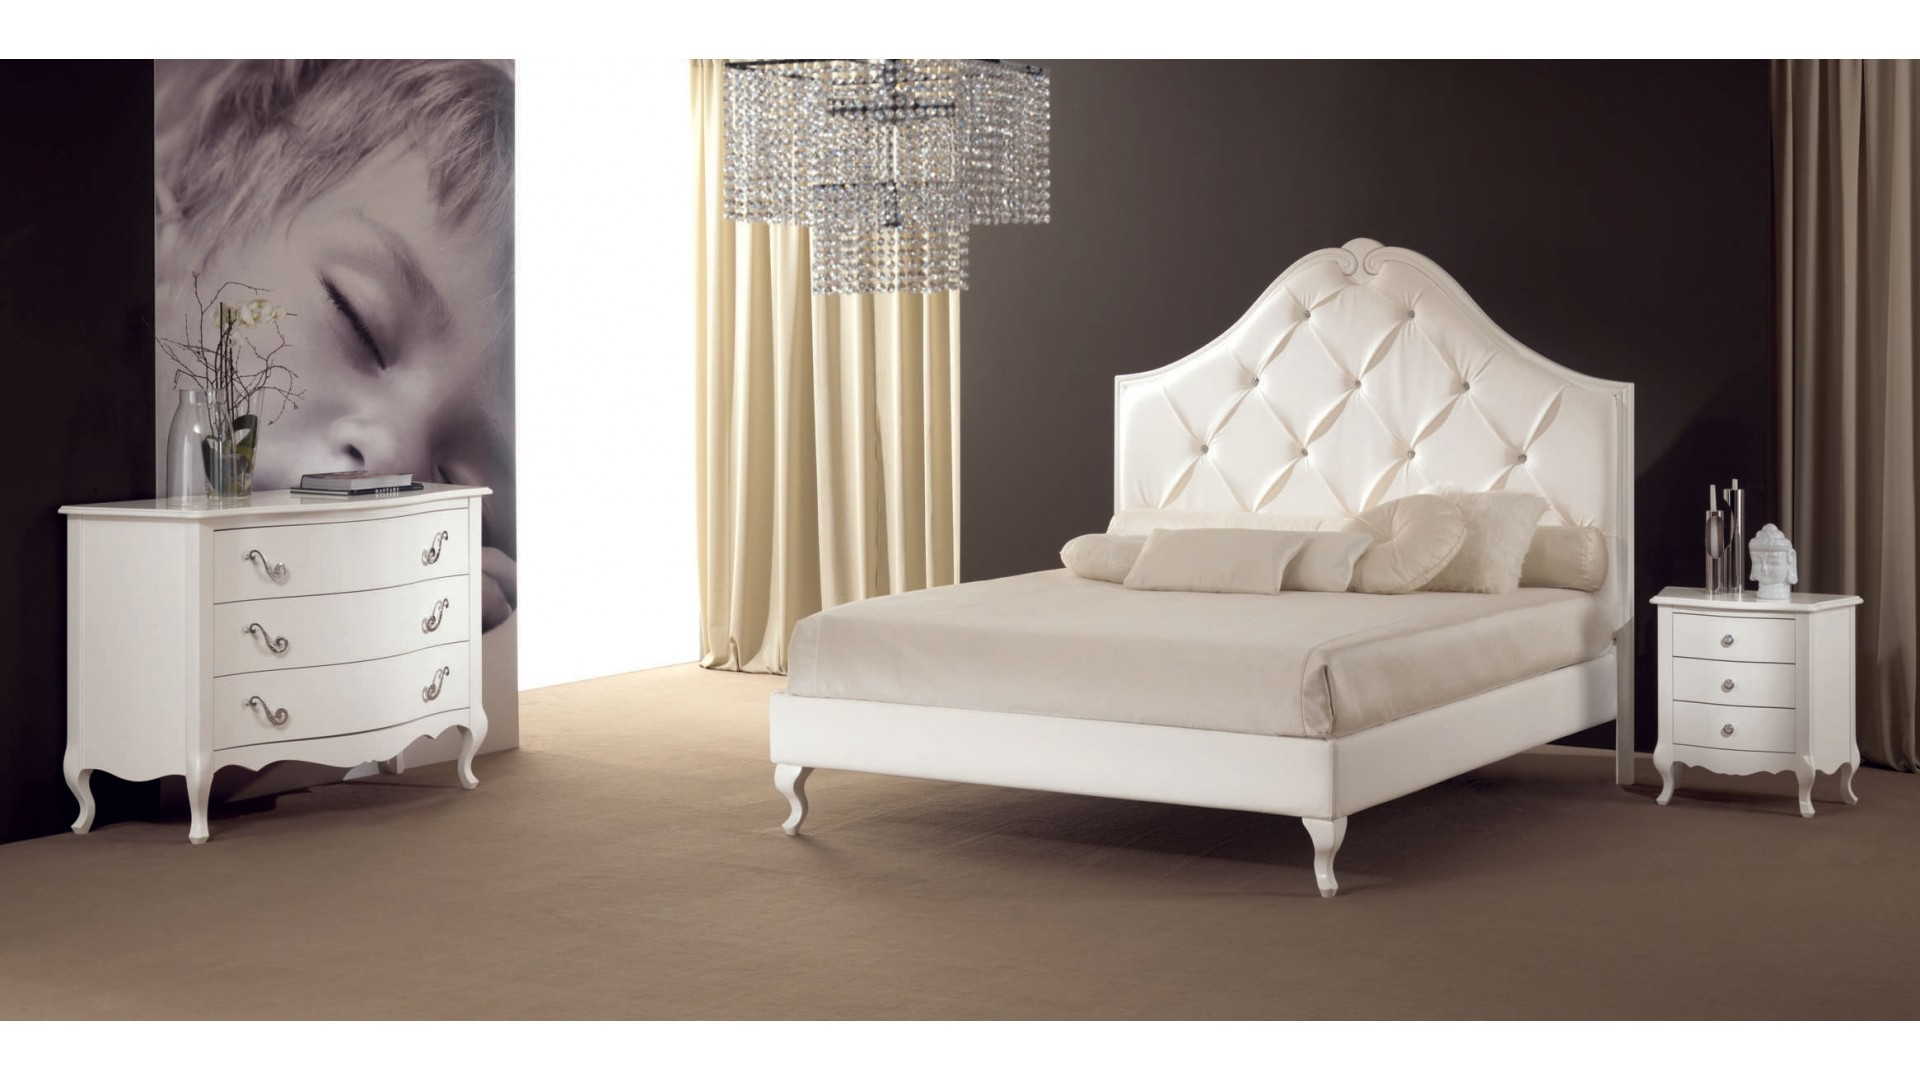 lit double maddy k avec t te de lit majestueuse piermaria so nuit. Black Bedroom Furniture Sets. Home Design Ideas